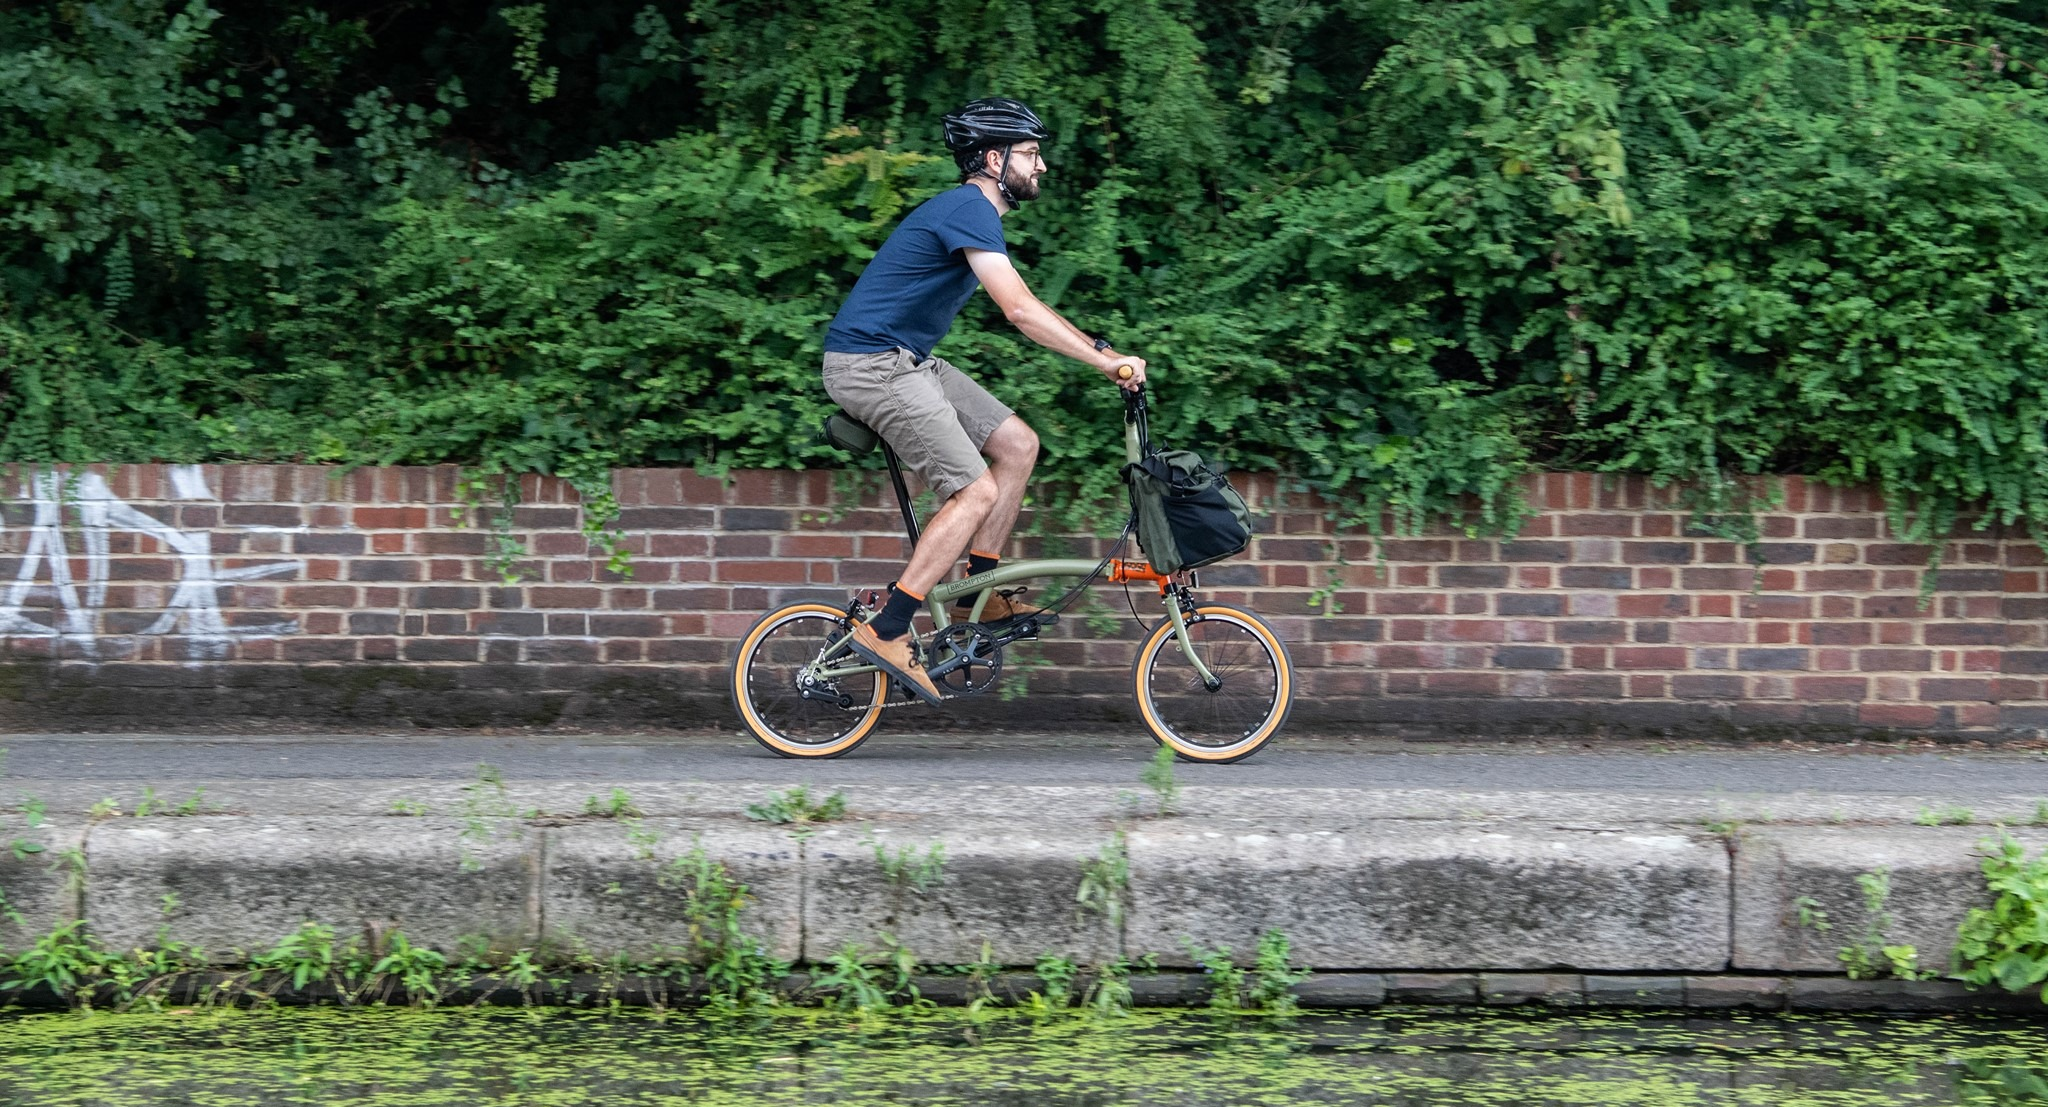 Brompton Explore is made for escaping